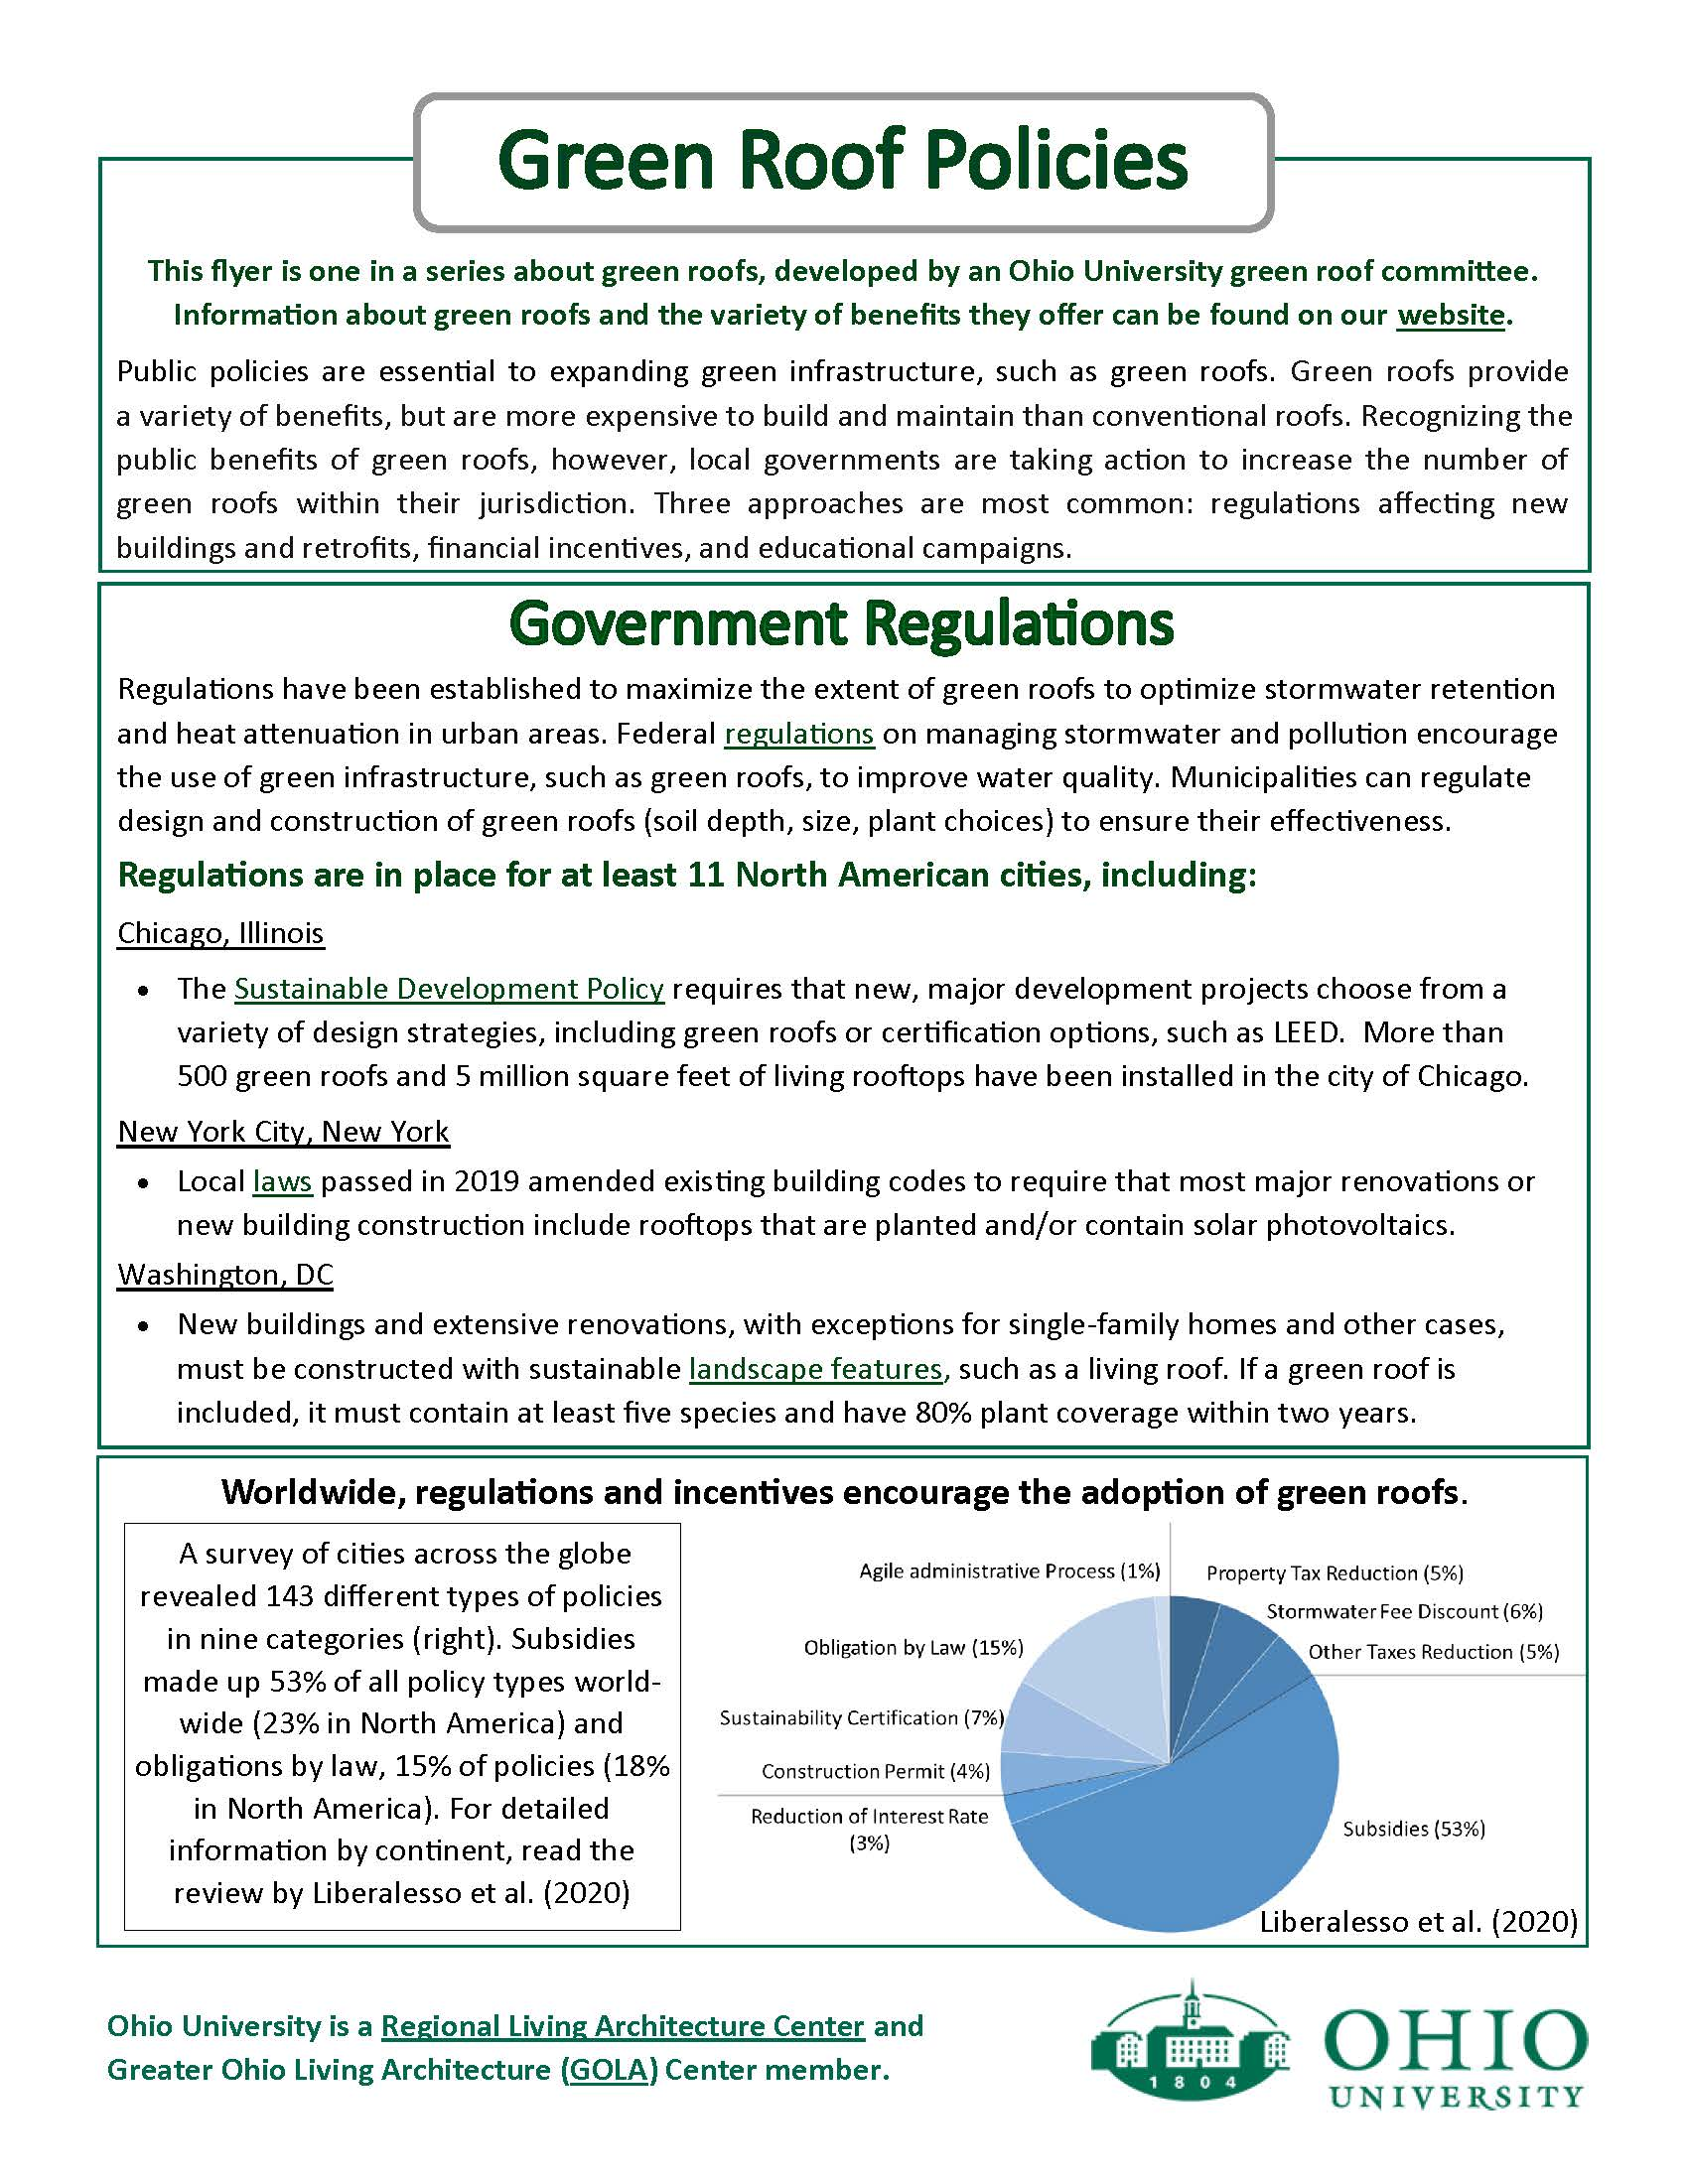 An image of a flyer on green roof policies page 1